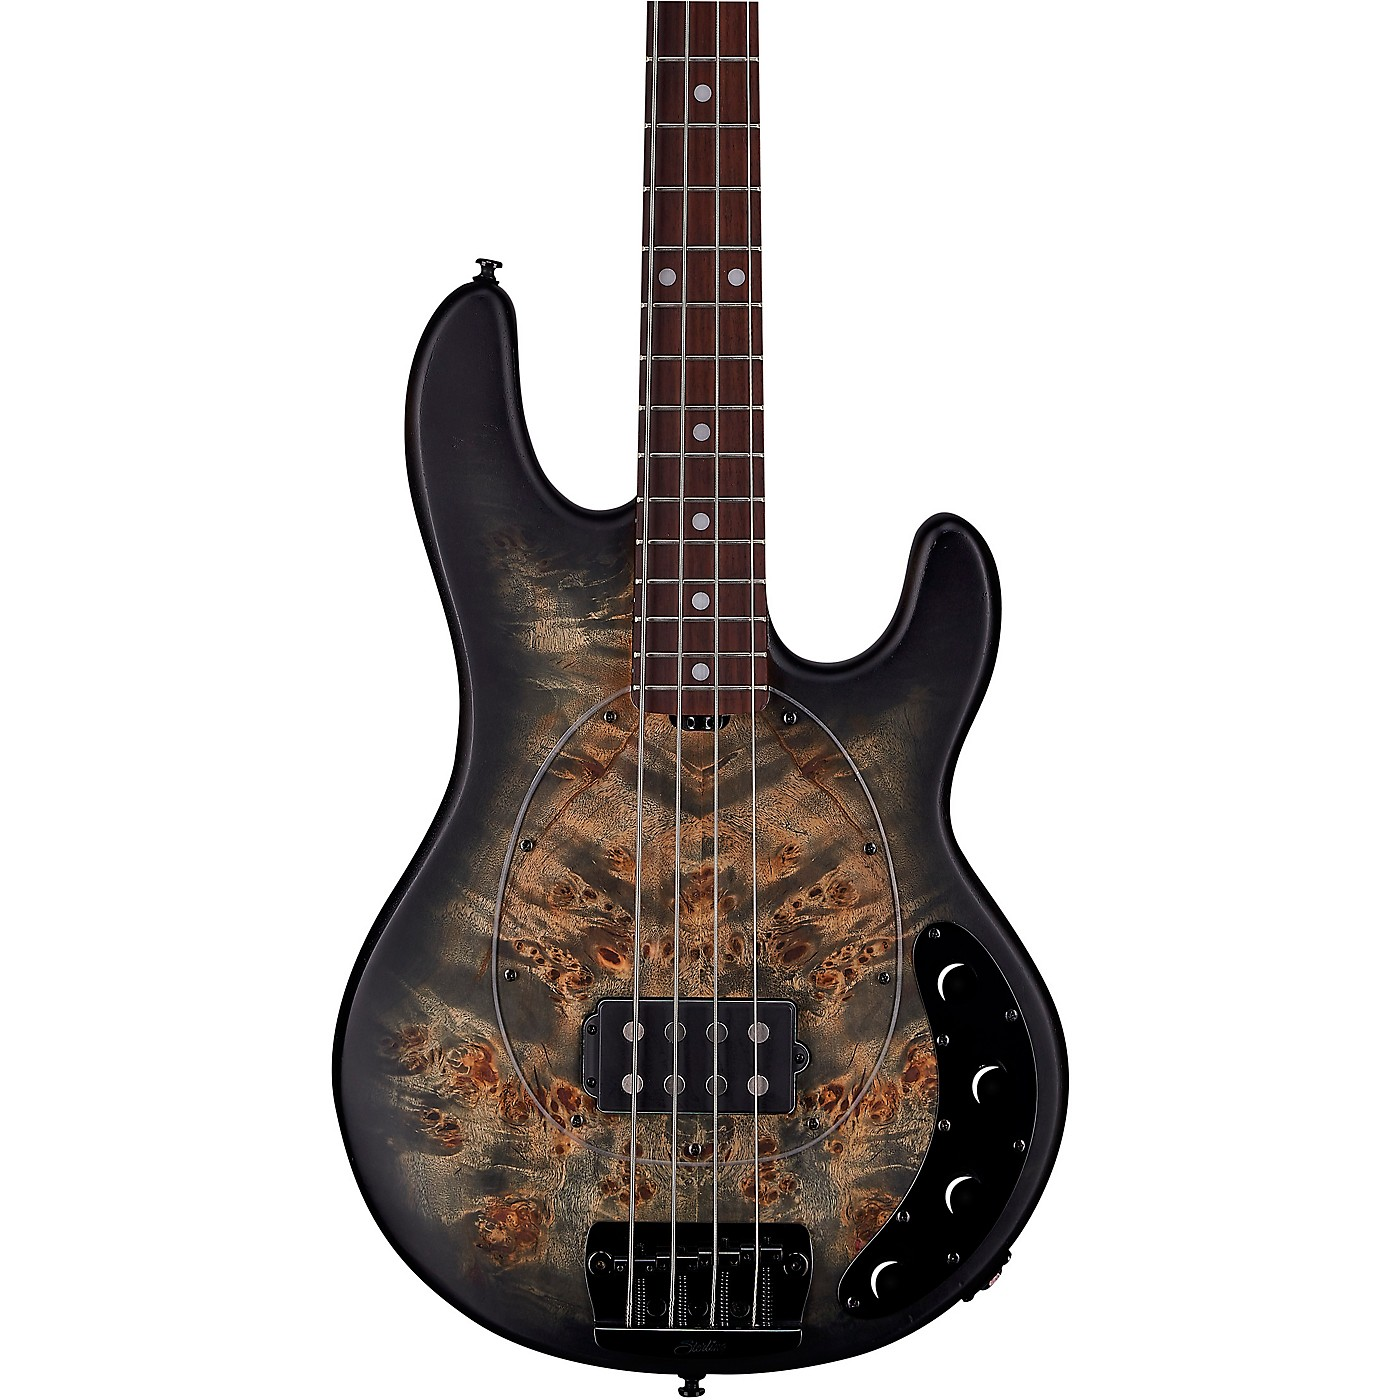 Sterling by Music Man StingRay Roasted Maple Neck Burl Top Bass thumbnail